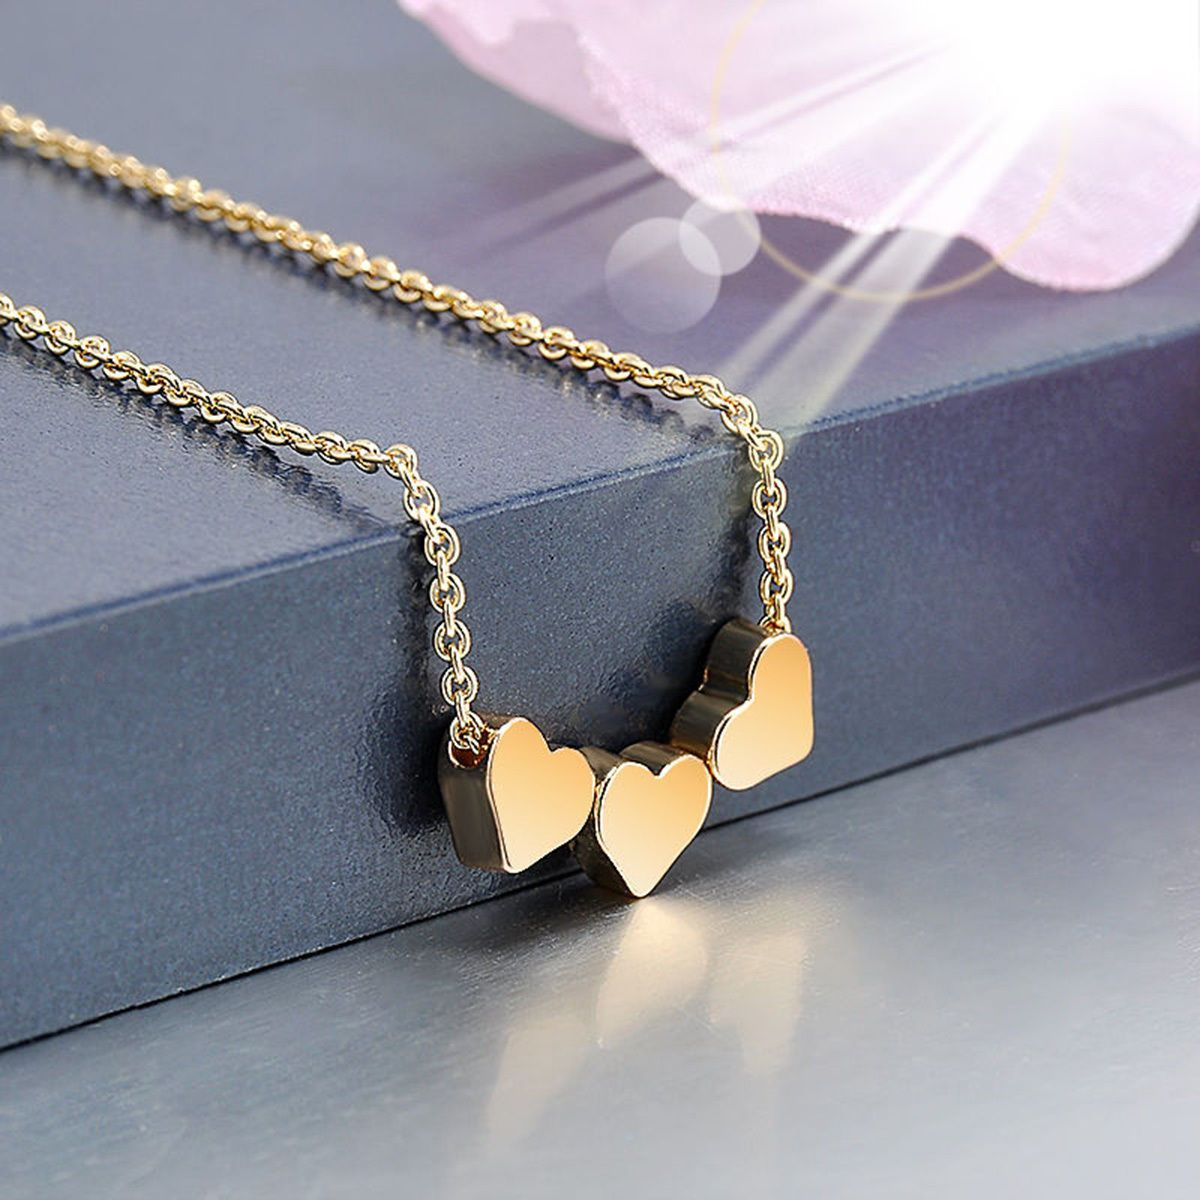 Fashion Stainless Steel Women Jewelry Three Heart Chain Pendant Necklace